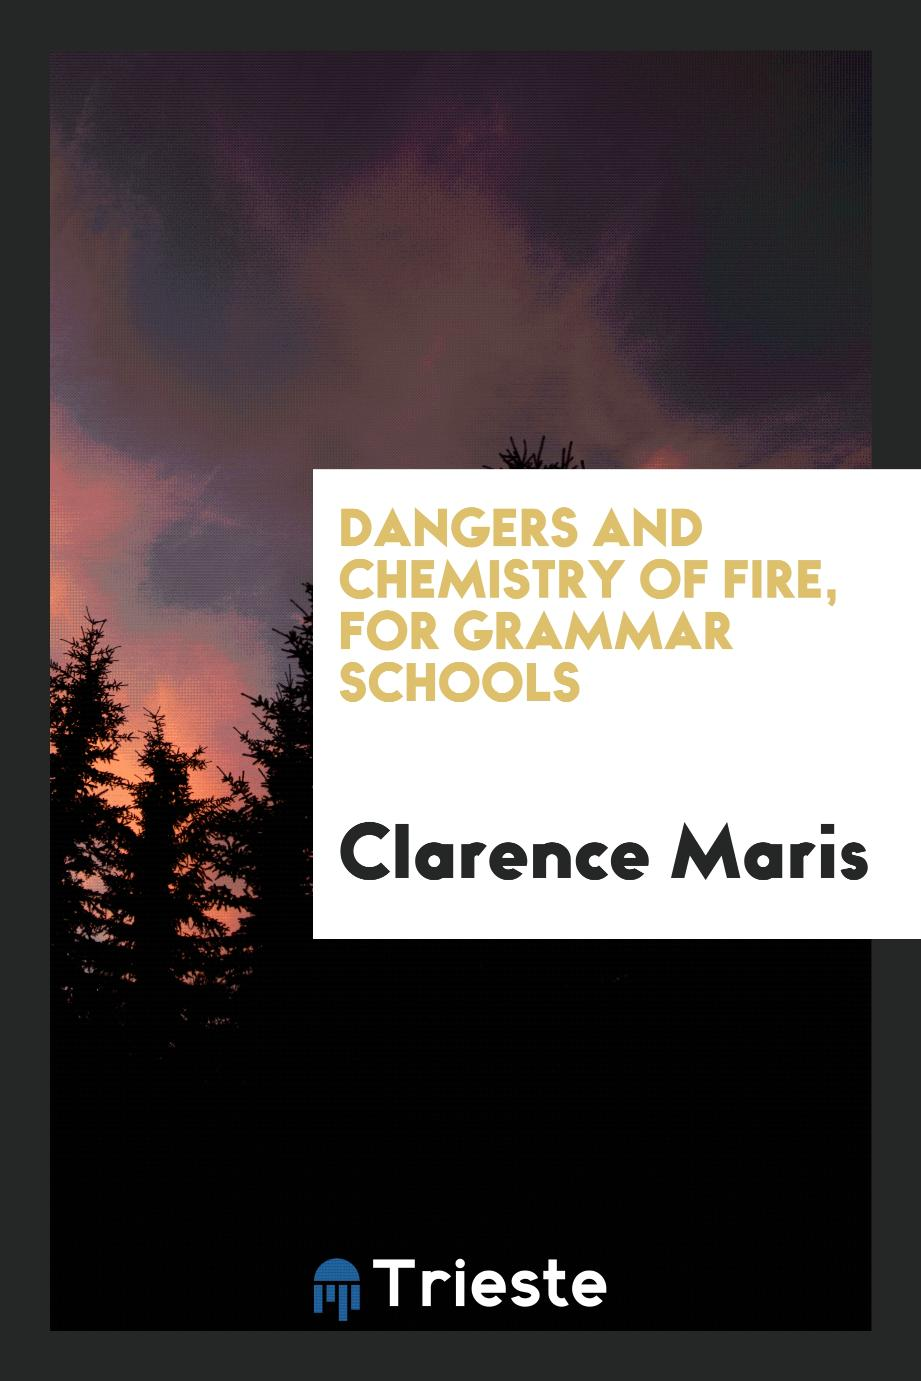 Dangers and Chemistry of Fire, for Grammar Schools